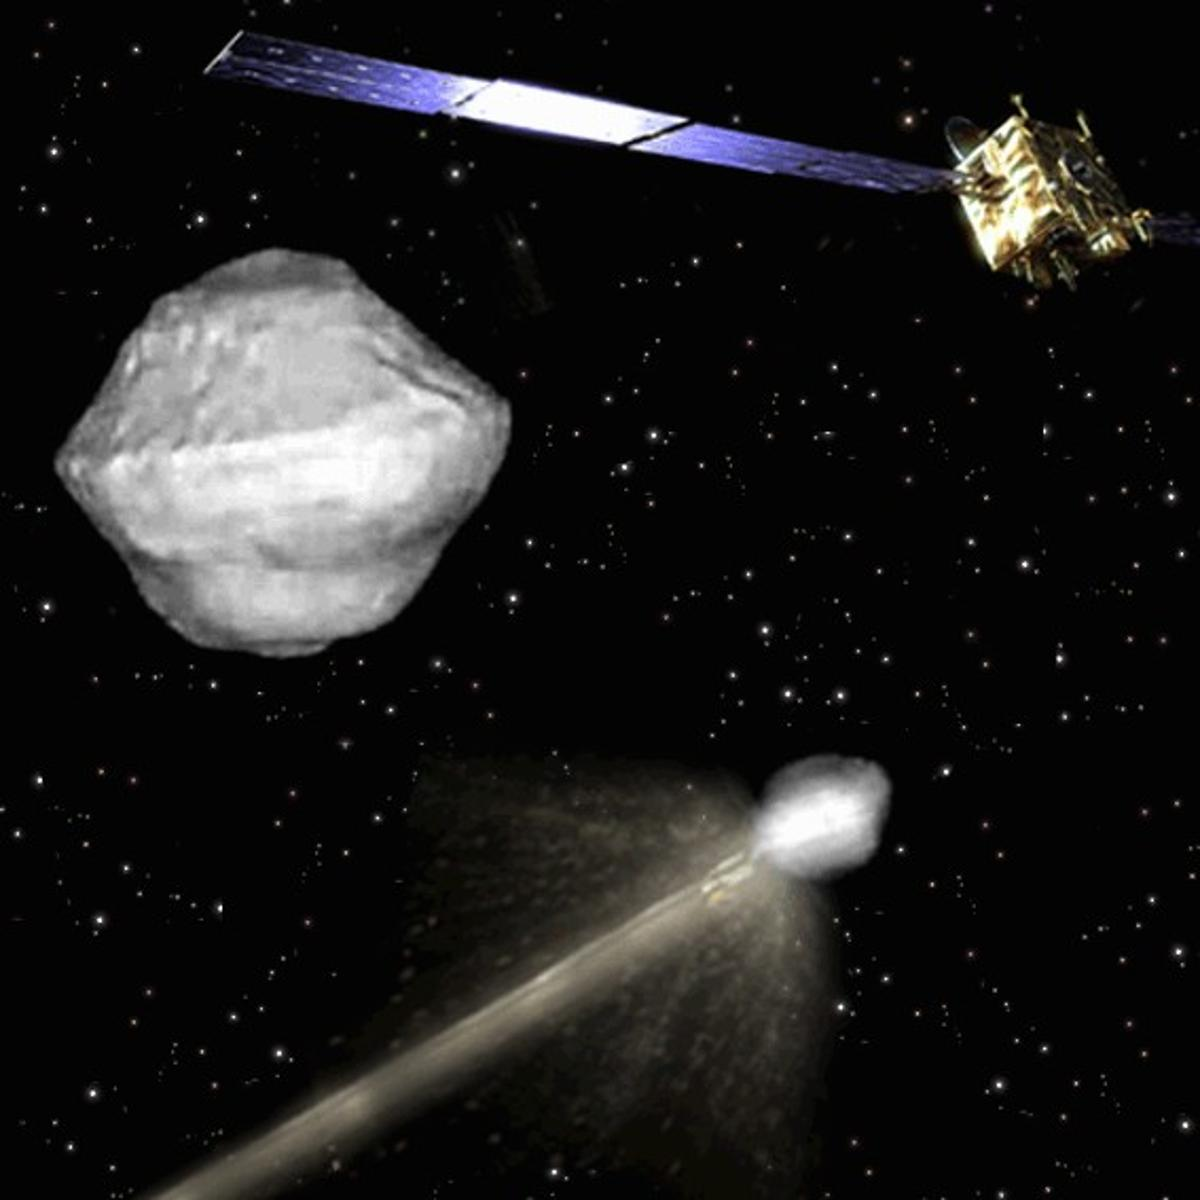 Artist's concept of the US-European Asteroid Impact and Deflection mission (AIDA)